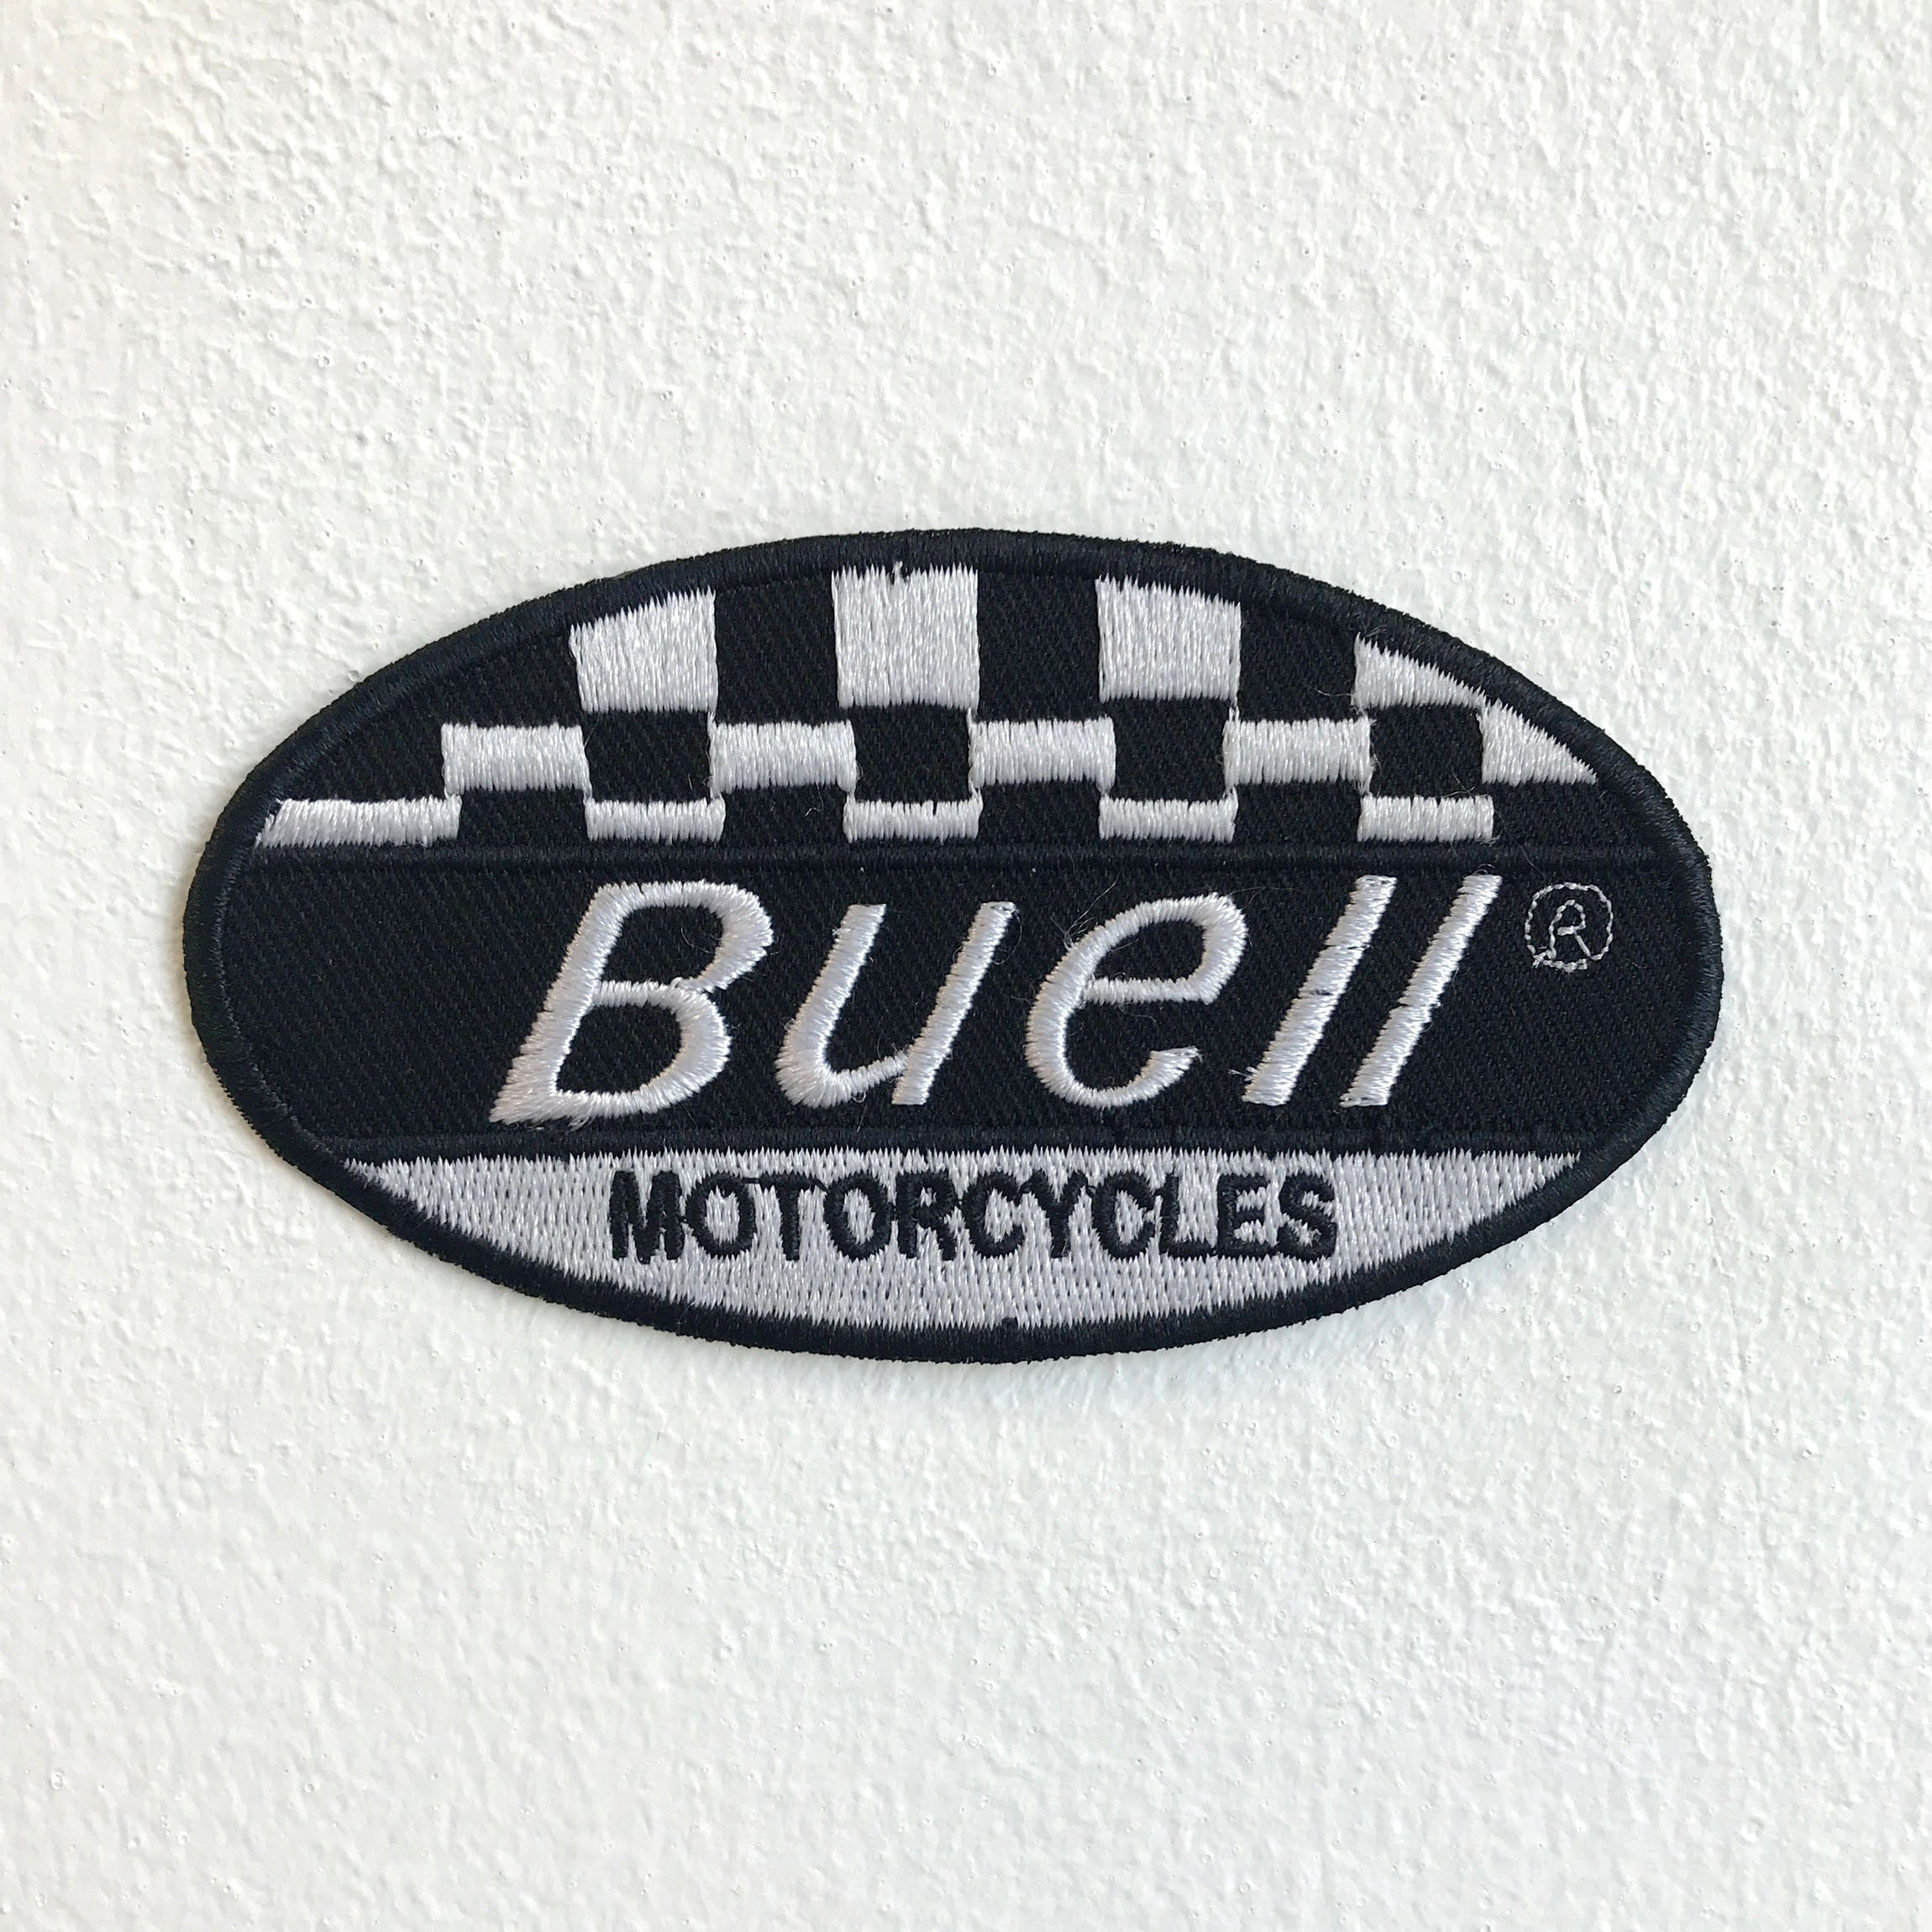 Buell Motorcycles Motorsports racing biker badge Iron Sew on Embroidered Patch - Patches-Badges